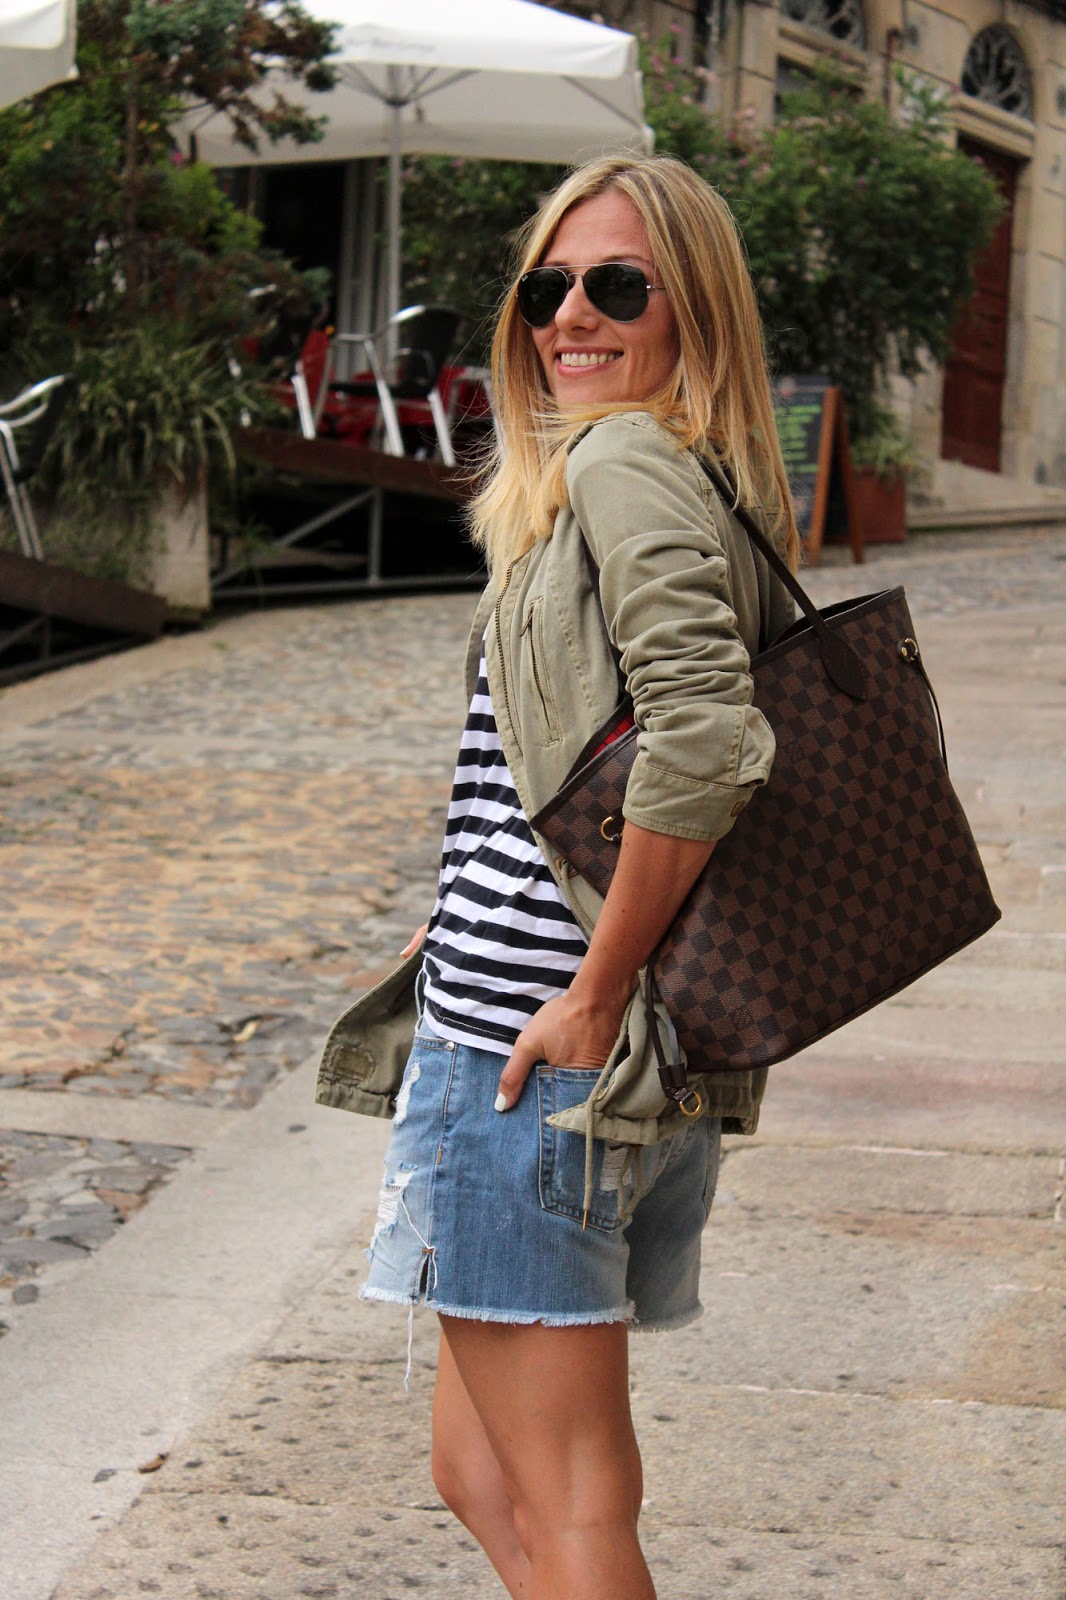 Eniwhere Fashion - Denim Shorts and Stripes shirt in Vigo